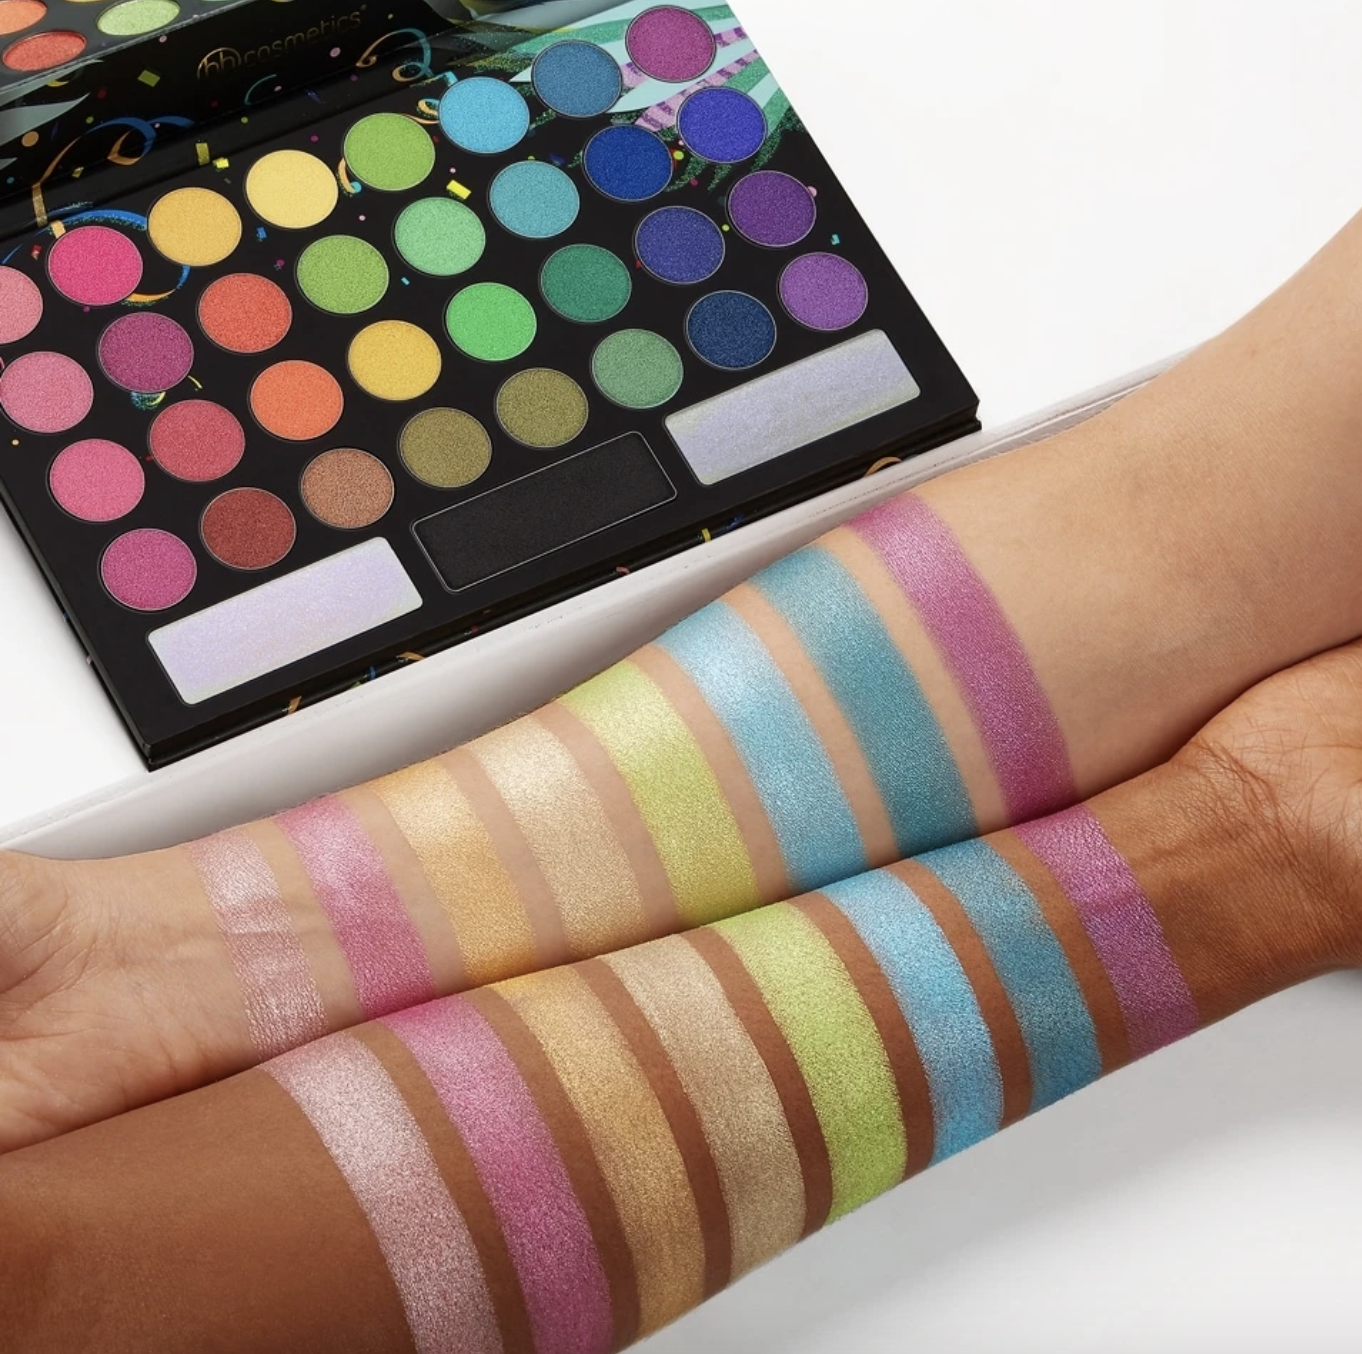 A bright and bold eyeshadow palette with swatches of eight different colors on both a lighter skinned arm and a darker skinned arm